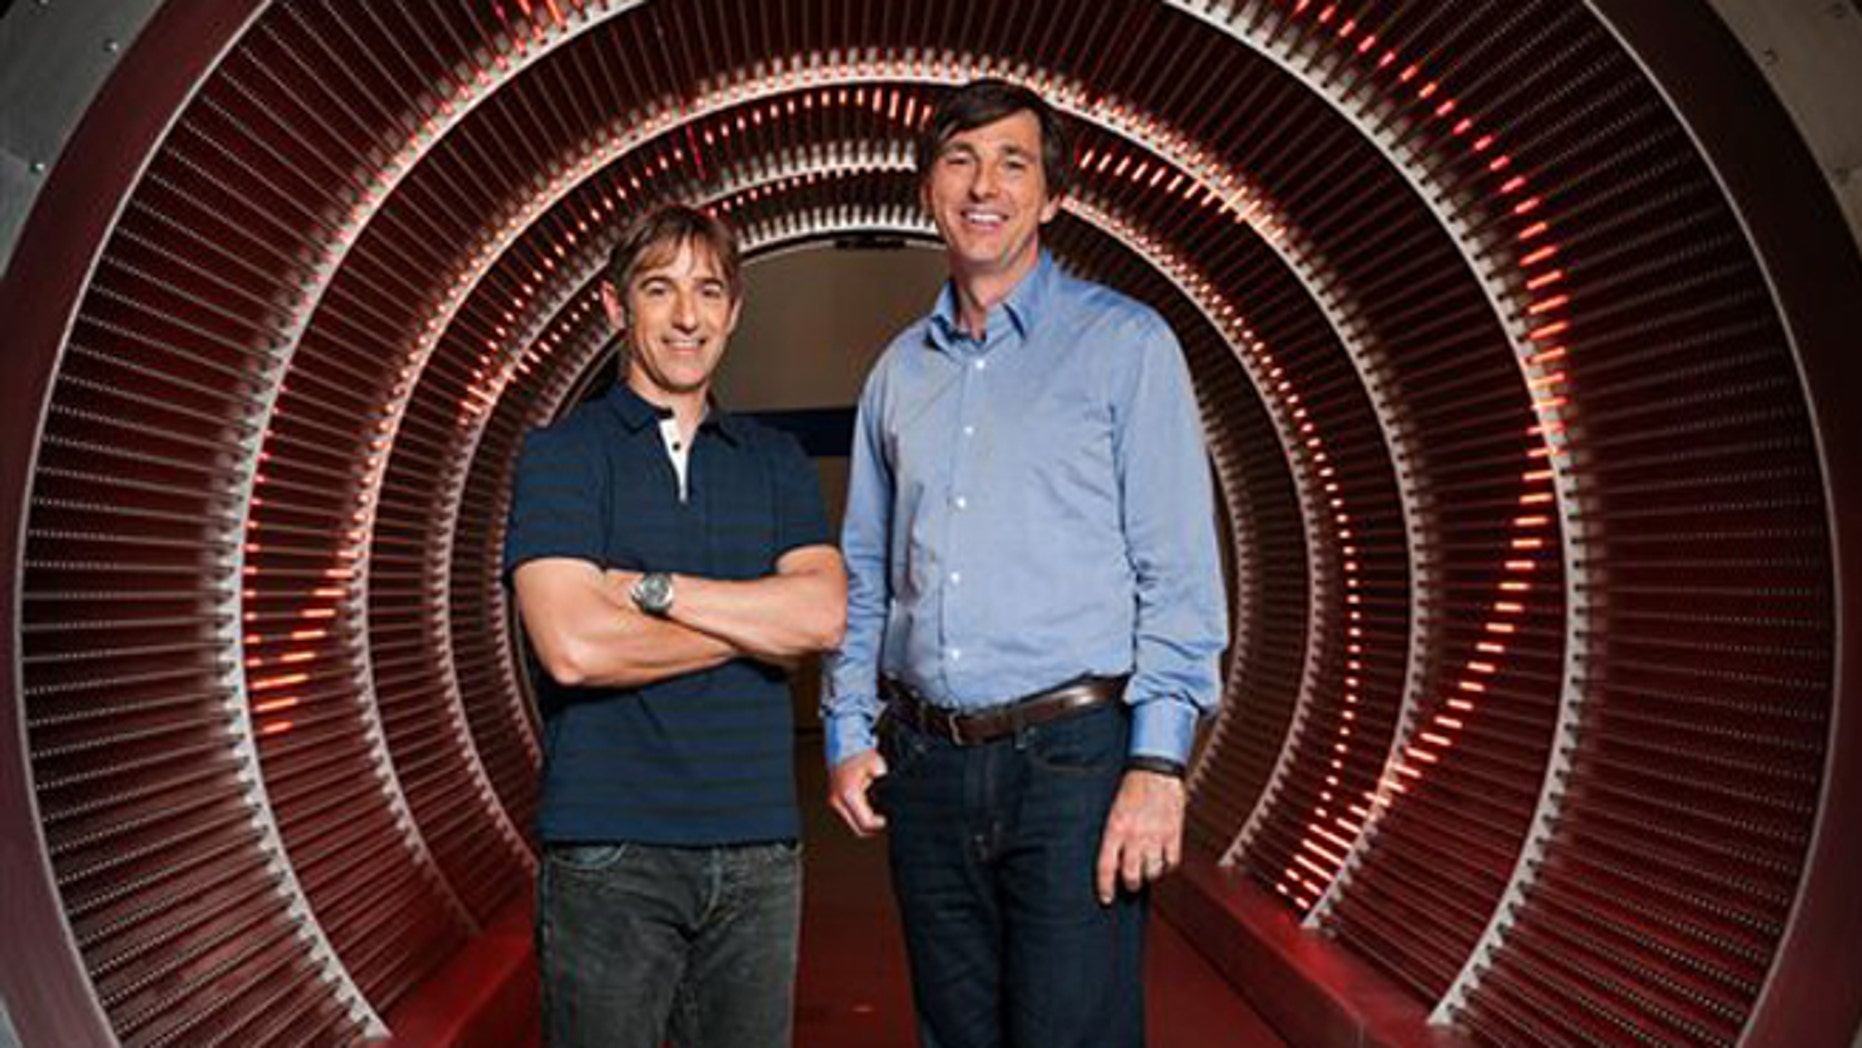 Zynga's CEO, Mark Pincus, right, is stepping down to be replaced by Don Mattrick, left, the head of Microsoft's Xbox business, Zynga announced Monday, July 1, 2013.